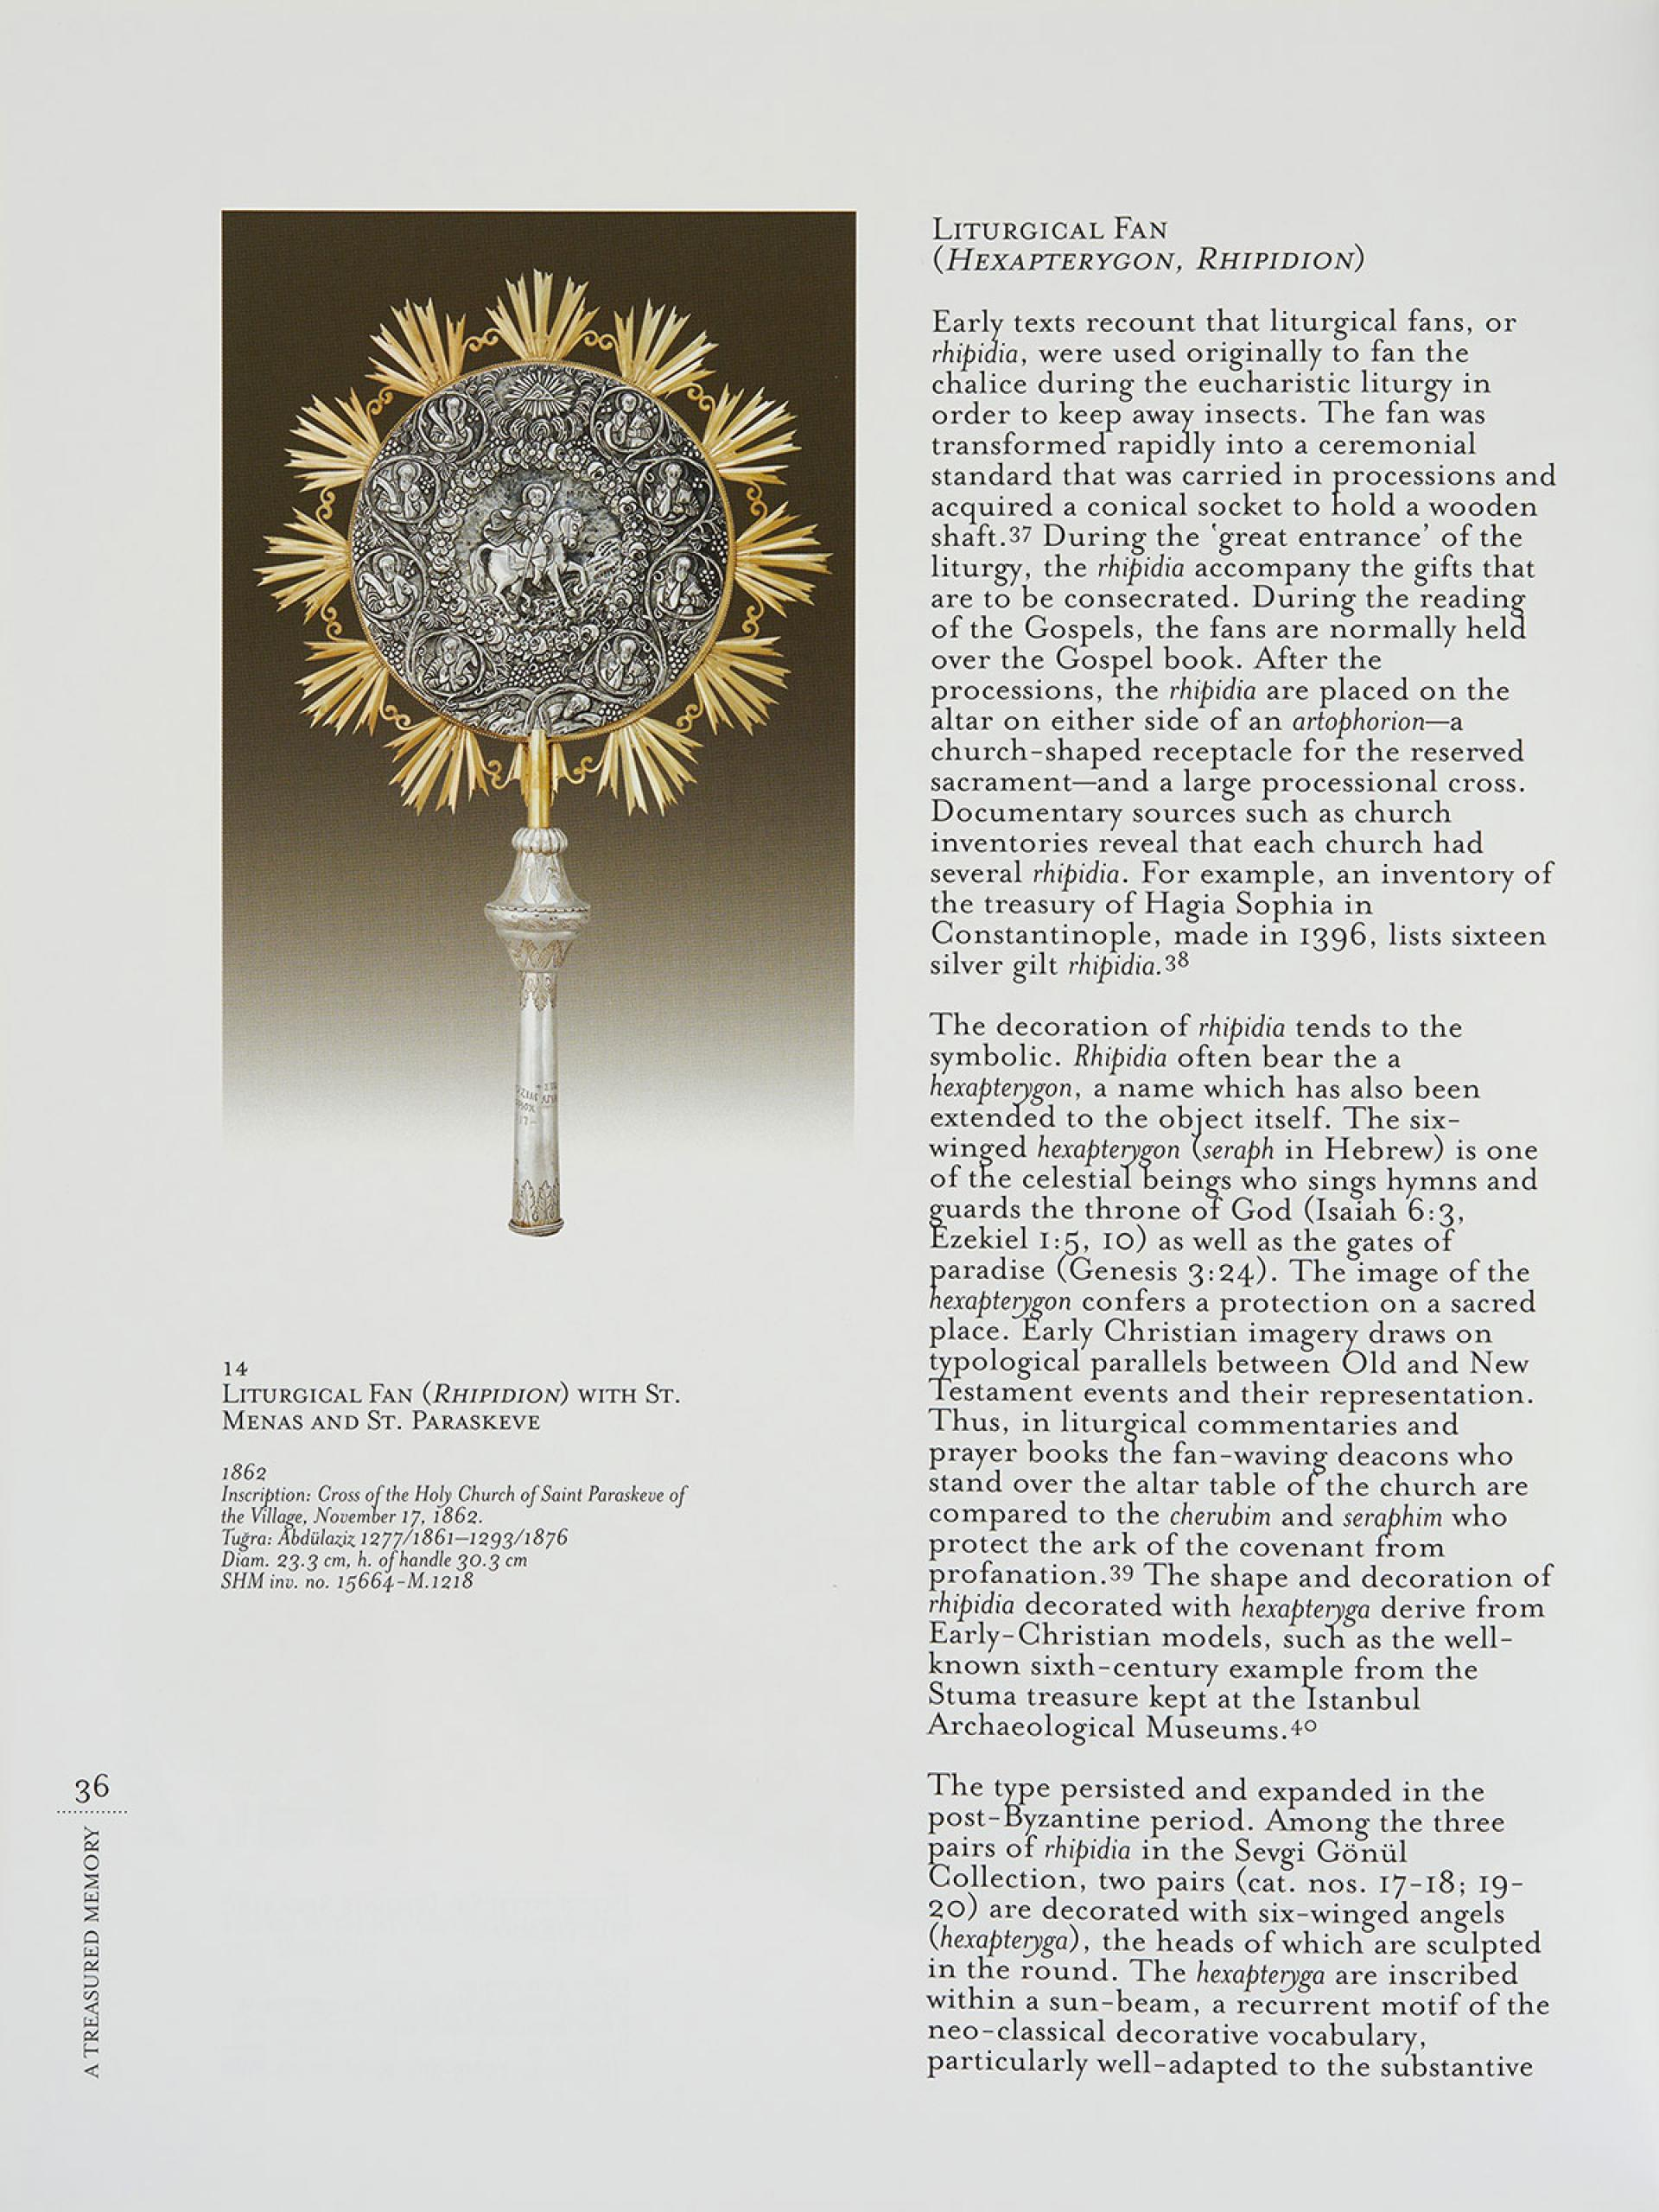 A Treasured Memory Ecclesiastical Silver From Late Ottoman Istanbul in the Sevgi Gönül Collection - KİTAPLAR - Sadberk Hanım Müzesi